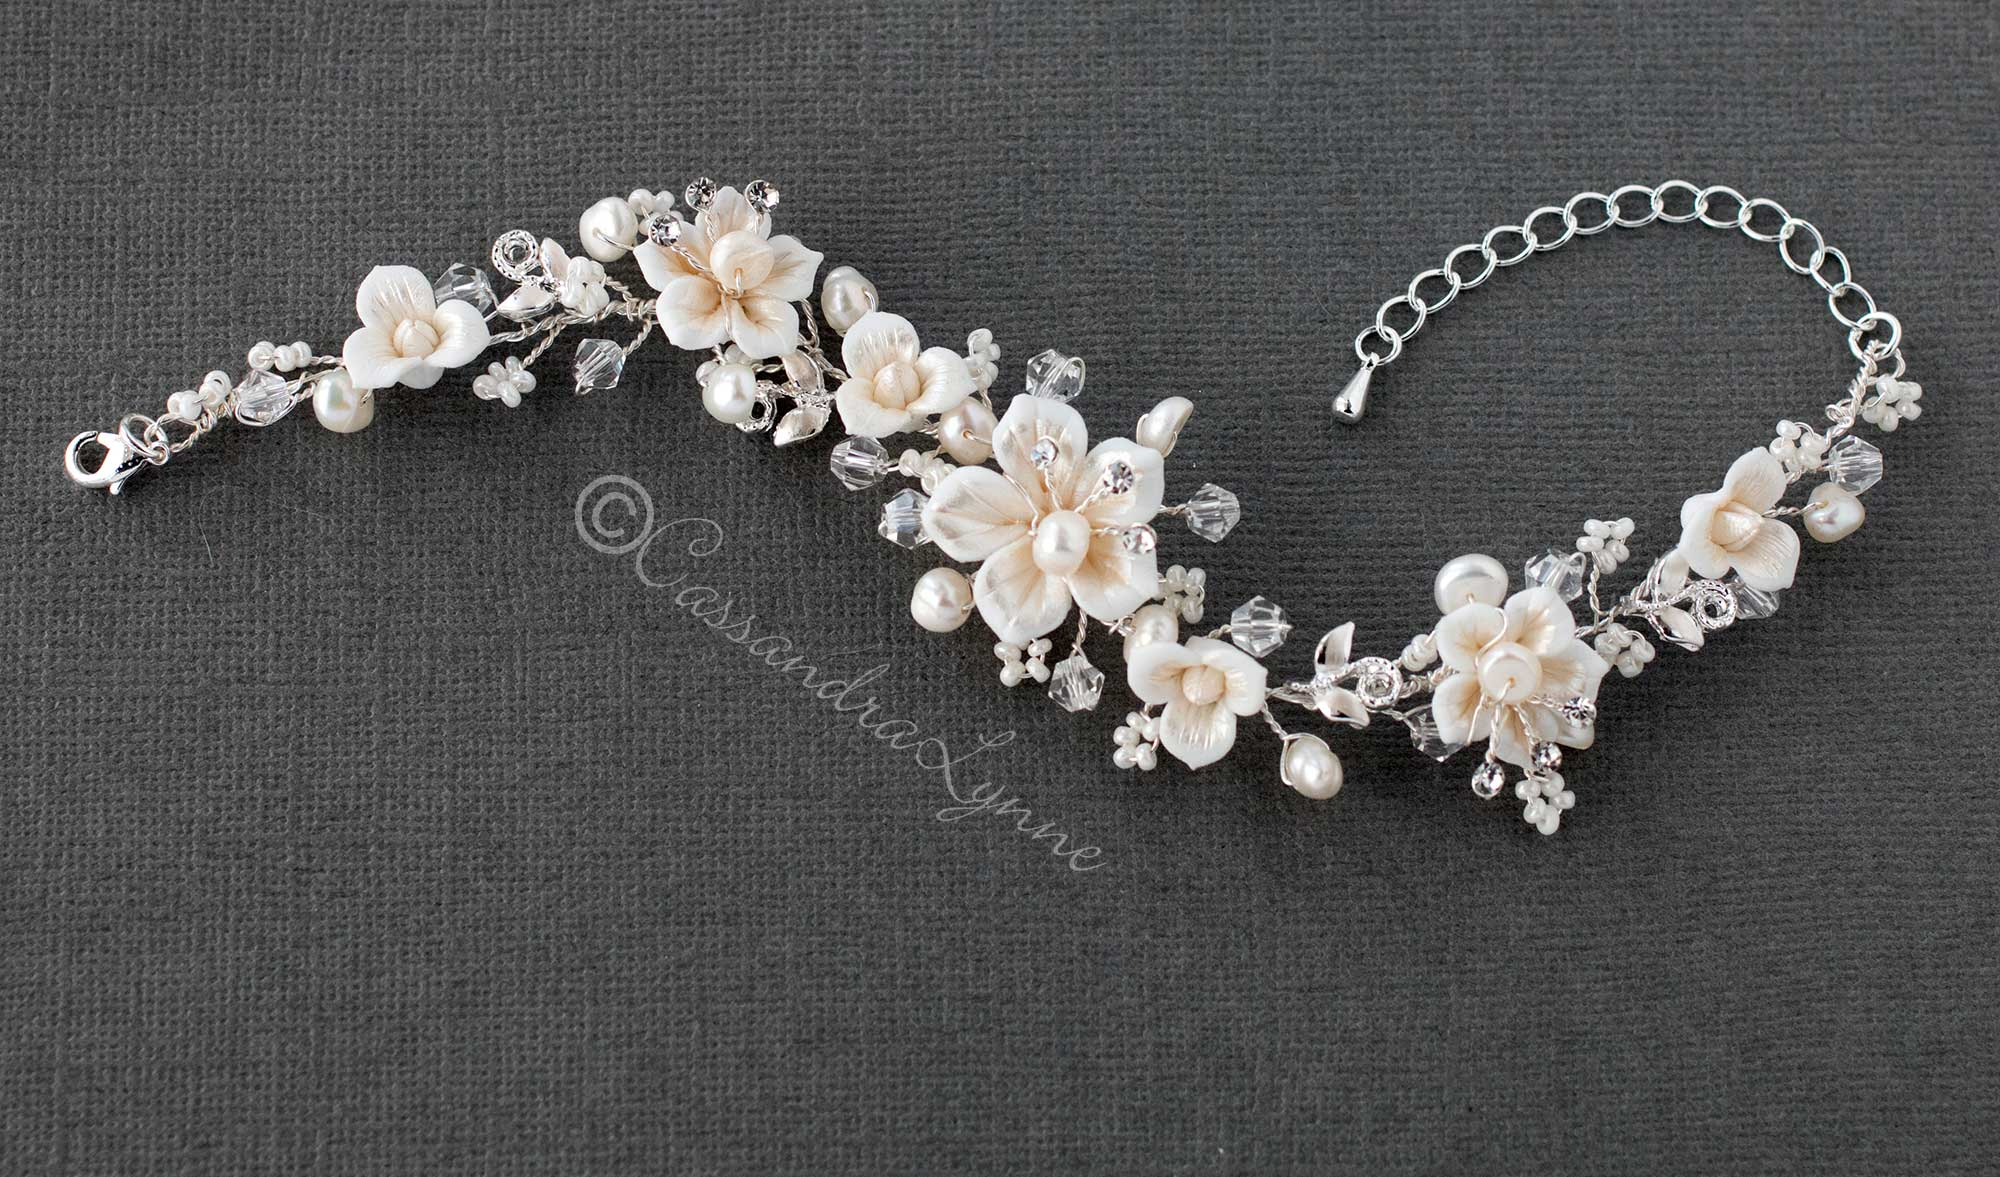 Bracelet of Porcelain Flowers and Pearls